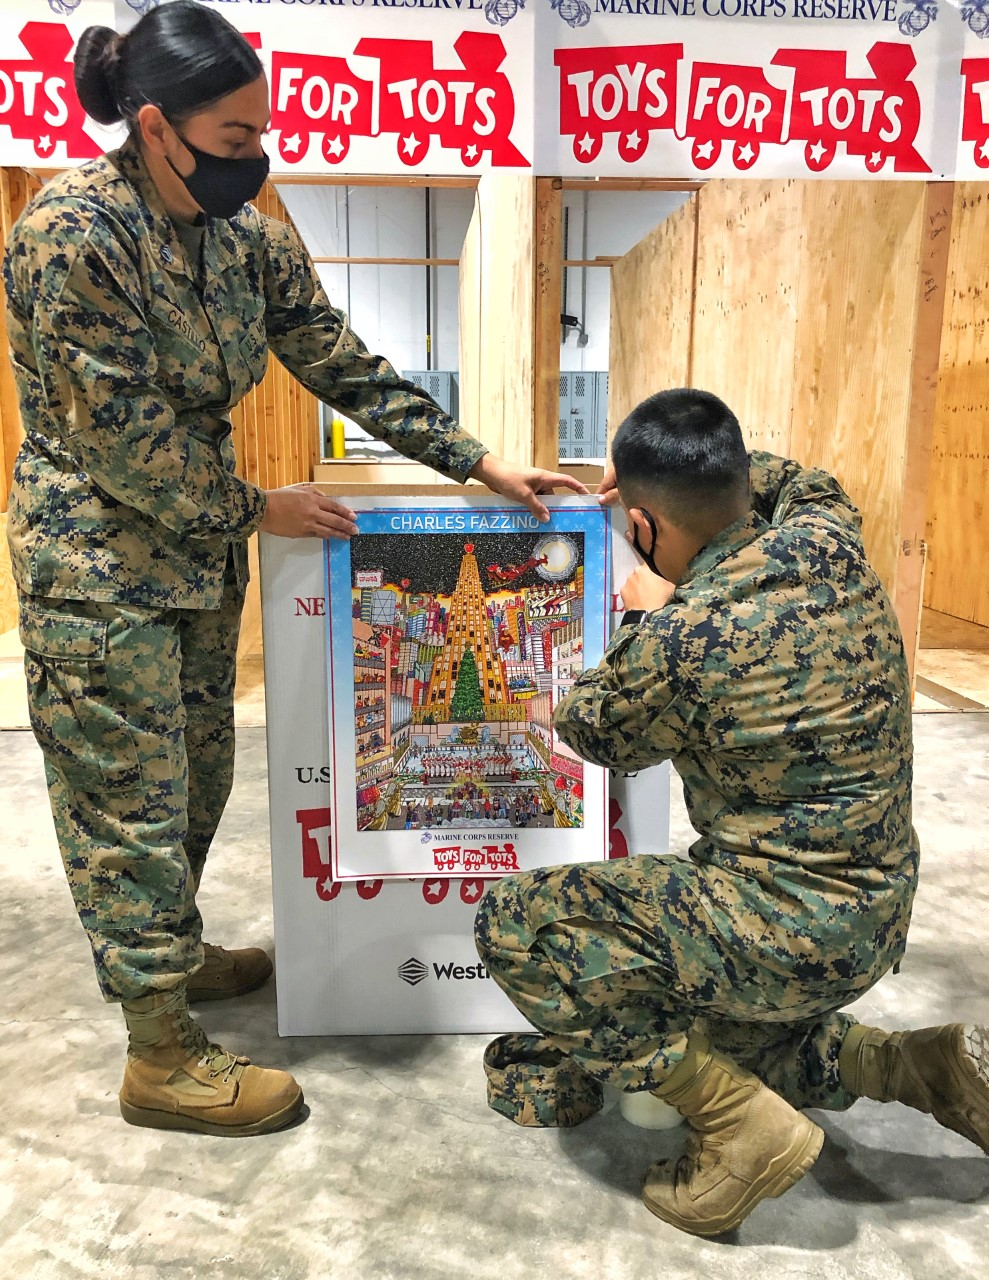 Two marines attaching Fazzino's Toys for Tots Official Poster to a donation box